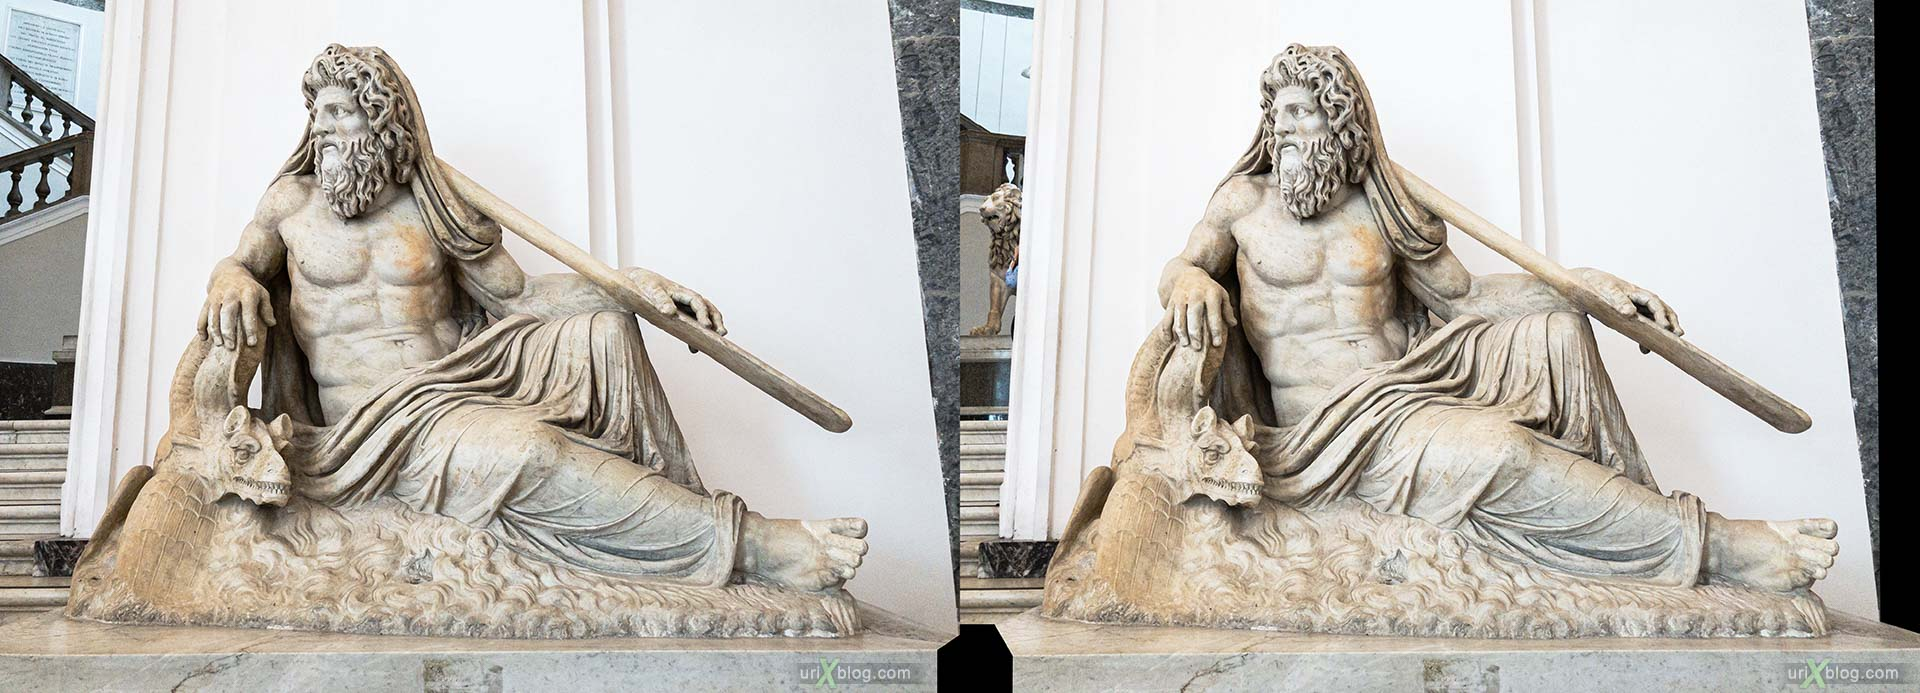 statue, National Archaeological Museum of Naples, ancient Rome, Pompei, exhibition, Naples, Italy, 3D, stereo pair, cross-eyed, crossview, cross view stereo pair, stereoscopic